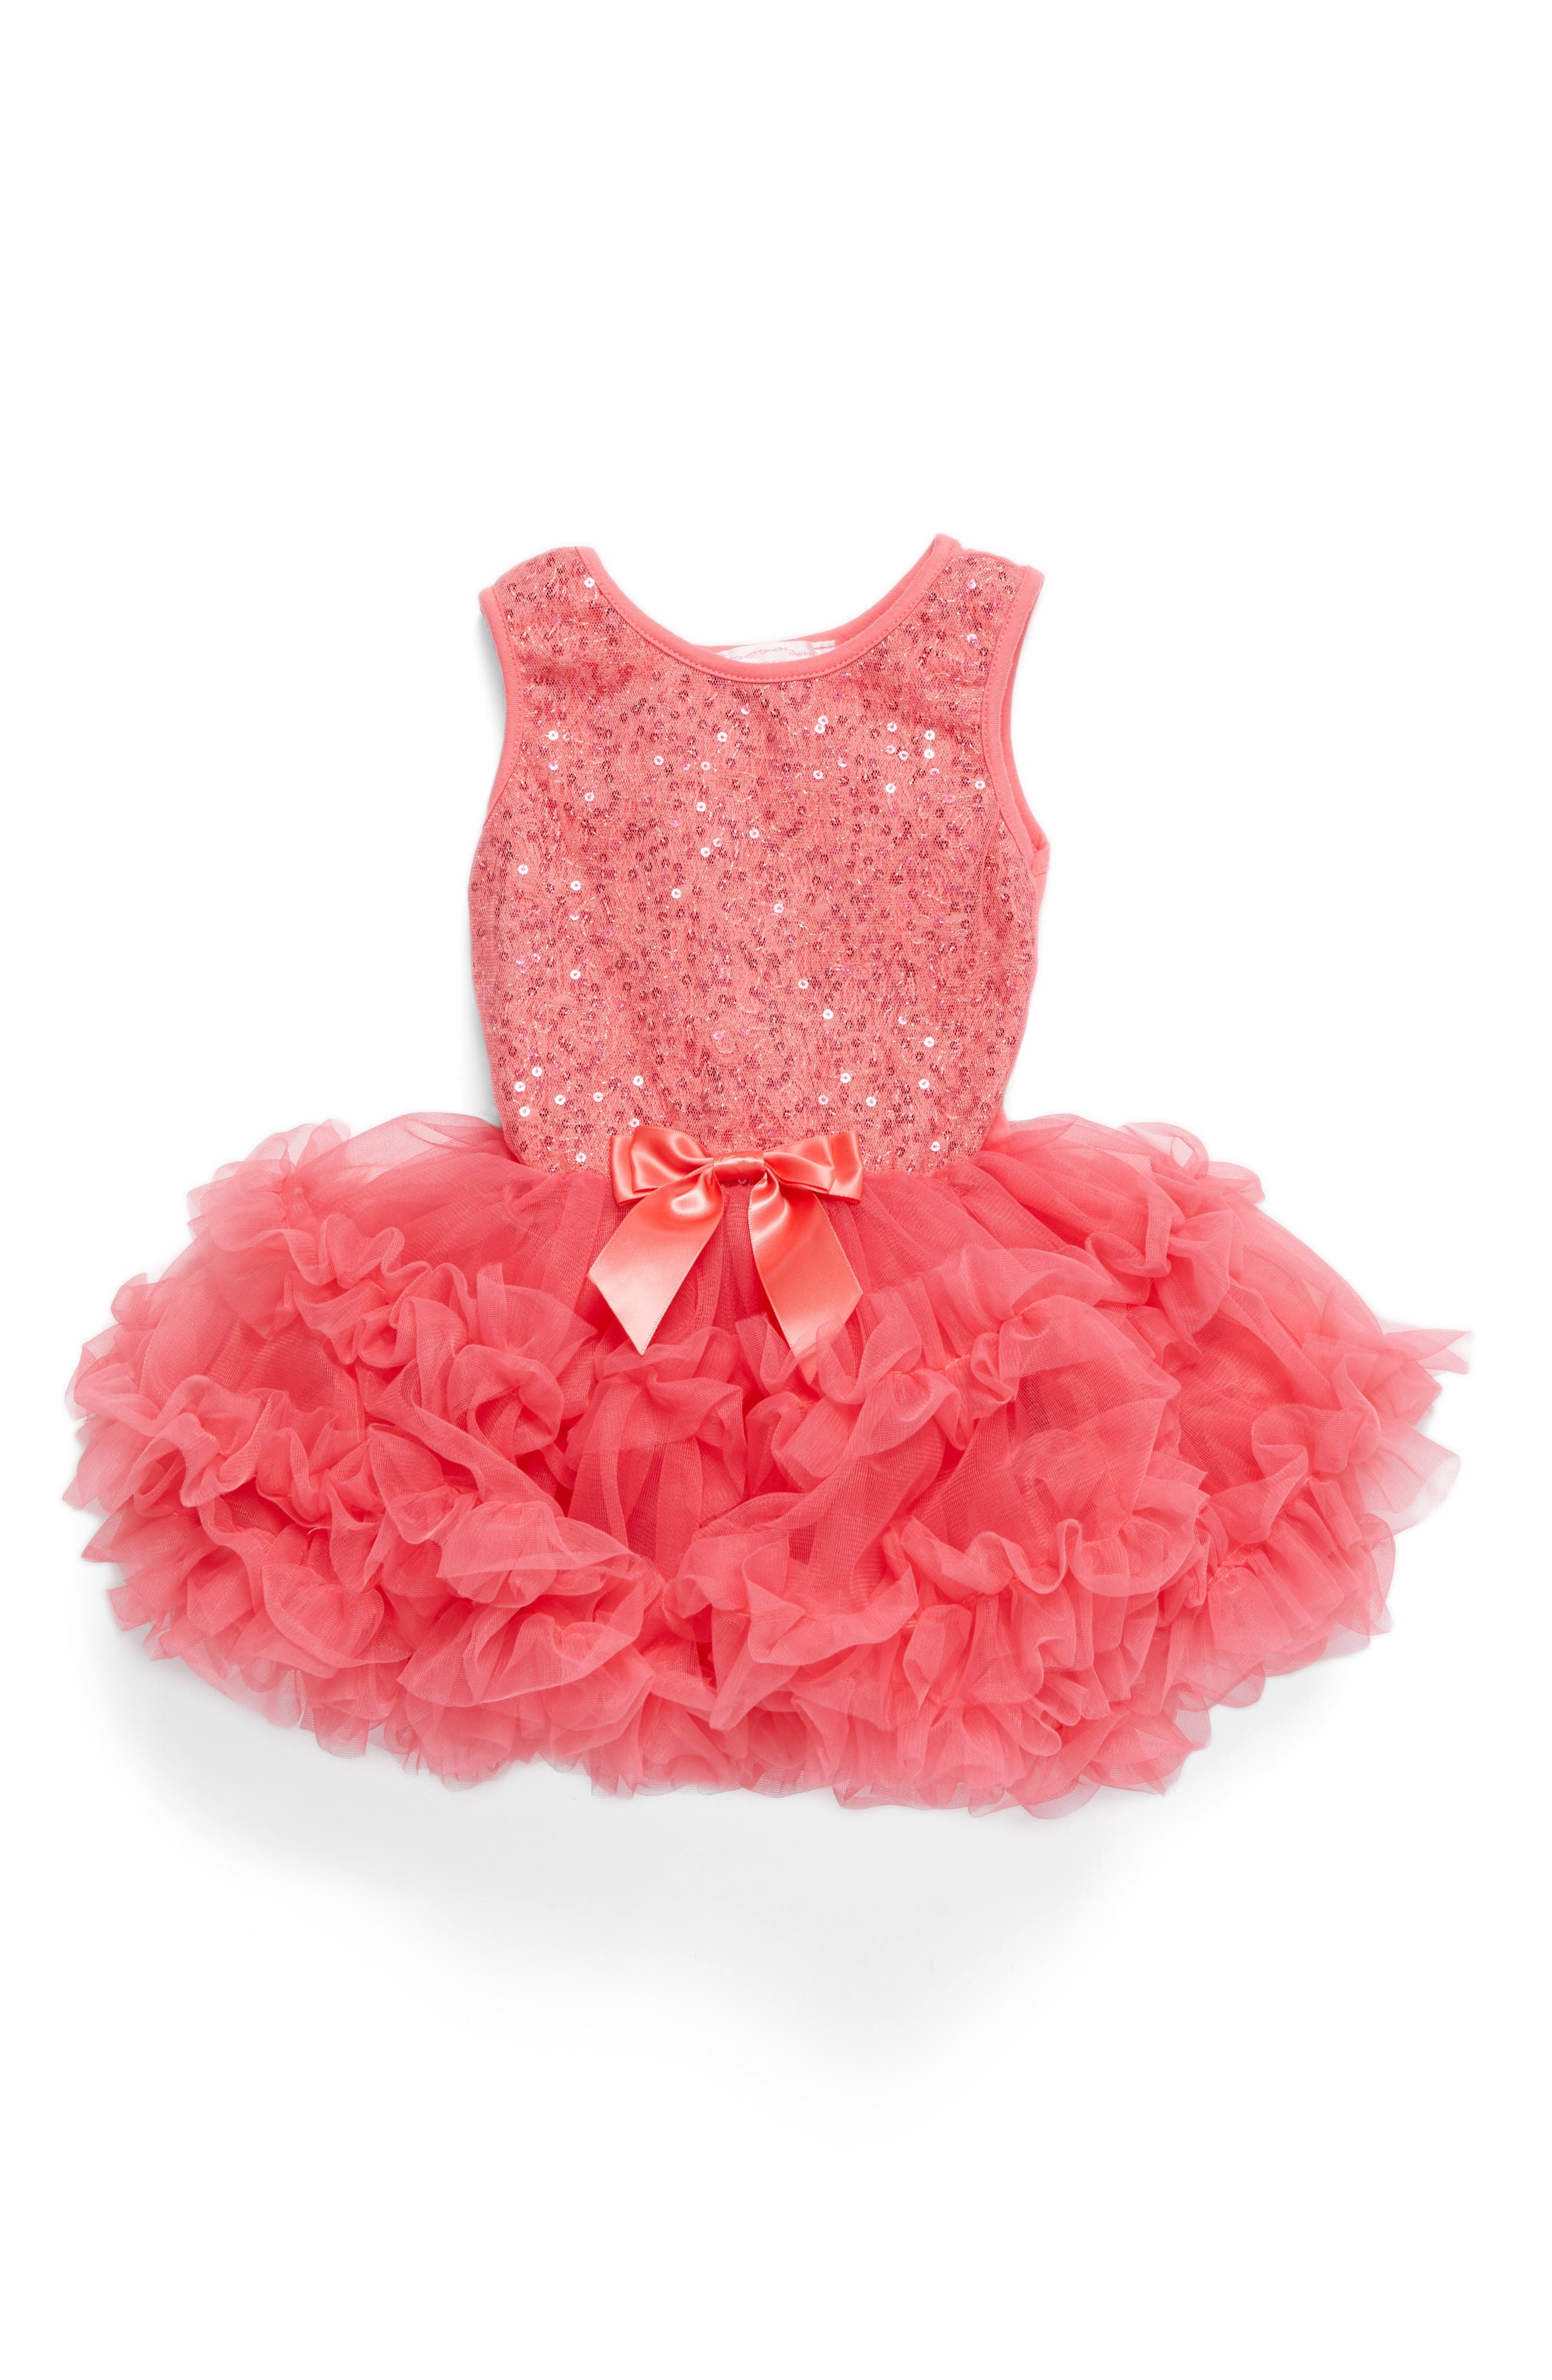 Alternate Image 1 Selected - Popatu Sequin Pettidress (Baby Girls)